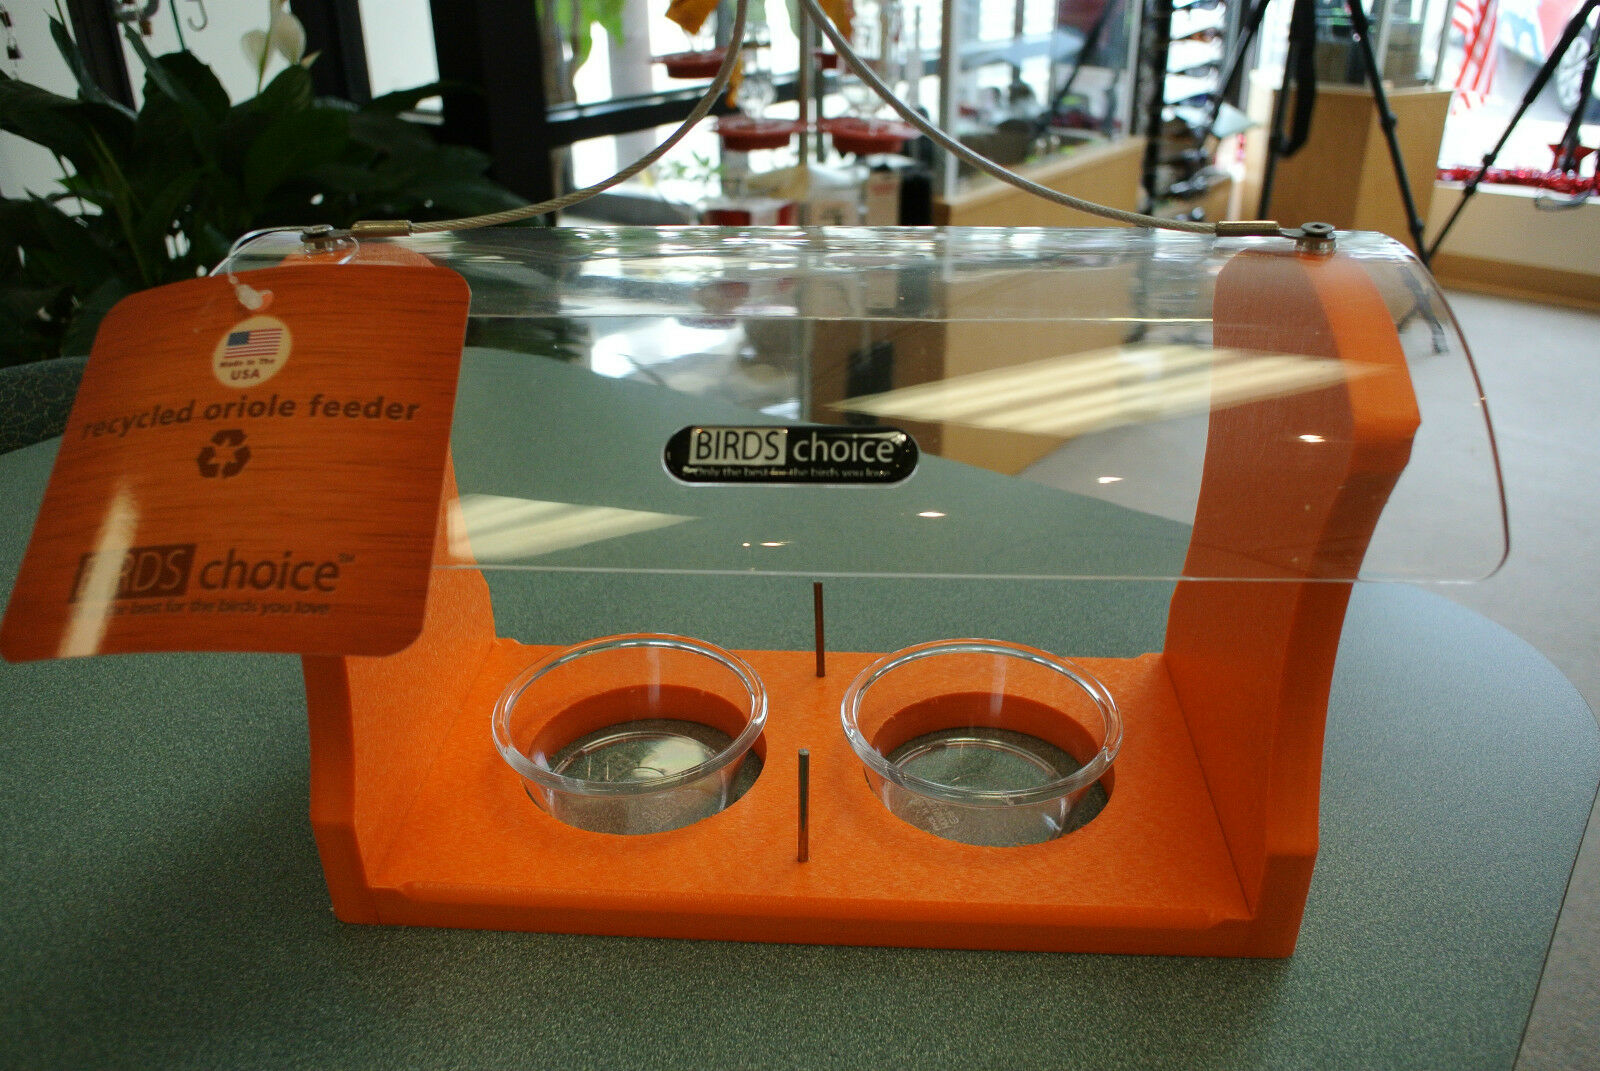 ORIOLE FEEDER BIRDS CHOICE PROFESSIONAL RECYCLED ORIOLE FEED